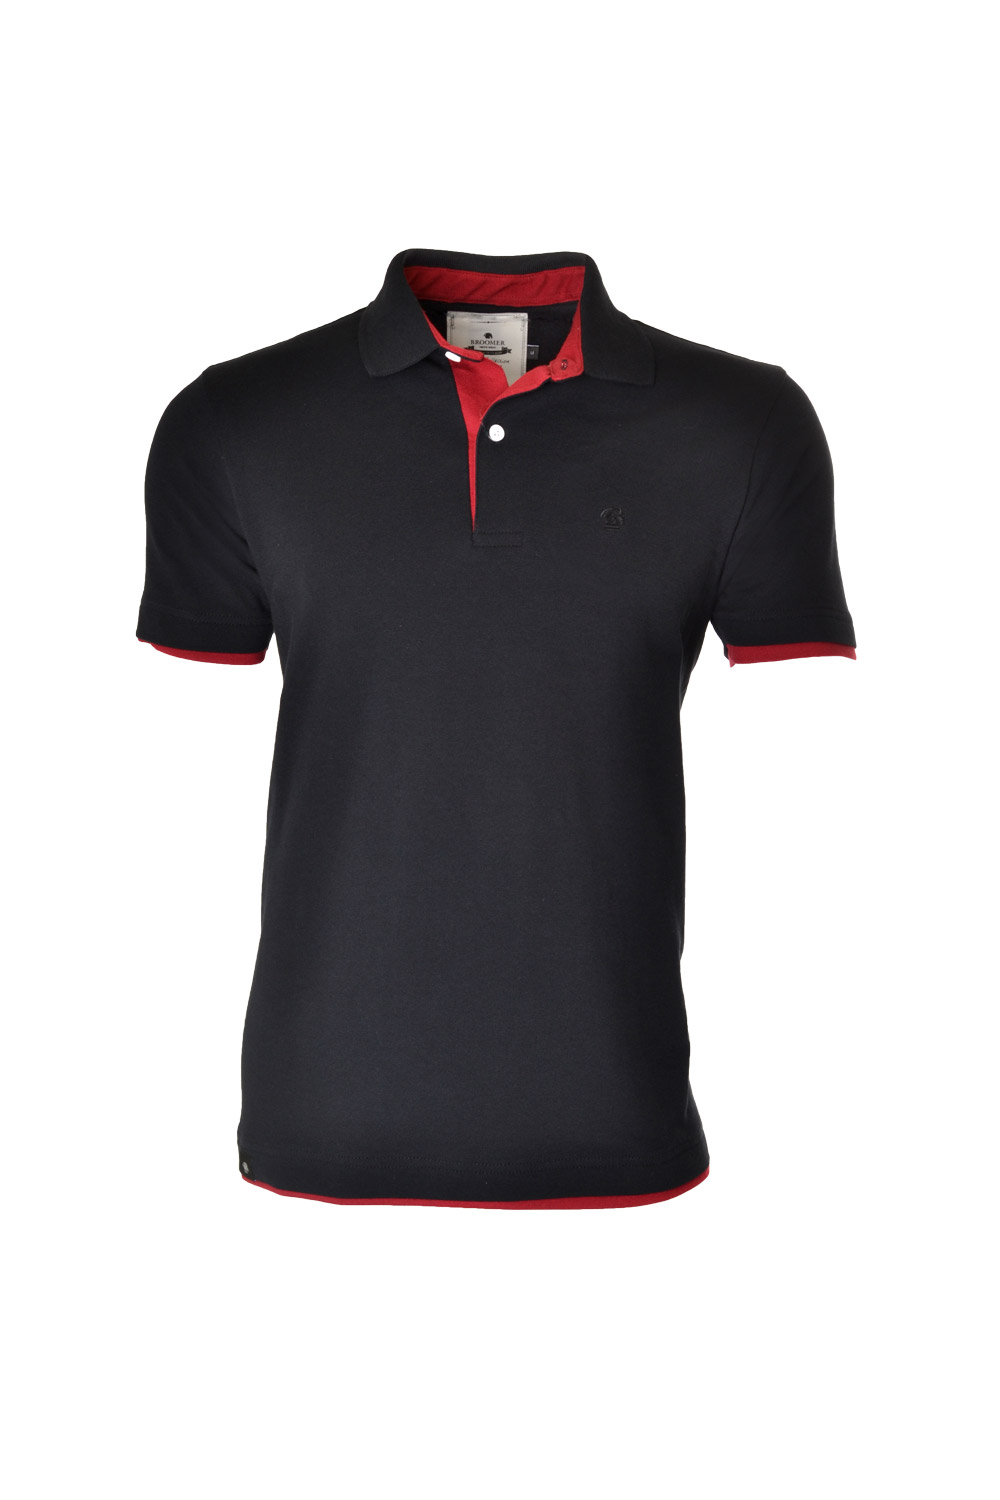 POLO MC CASUAL SUPER SLIM ALGODAO & ELASTANO PIQUET LISO PRETO